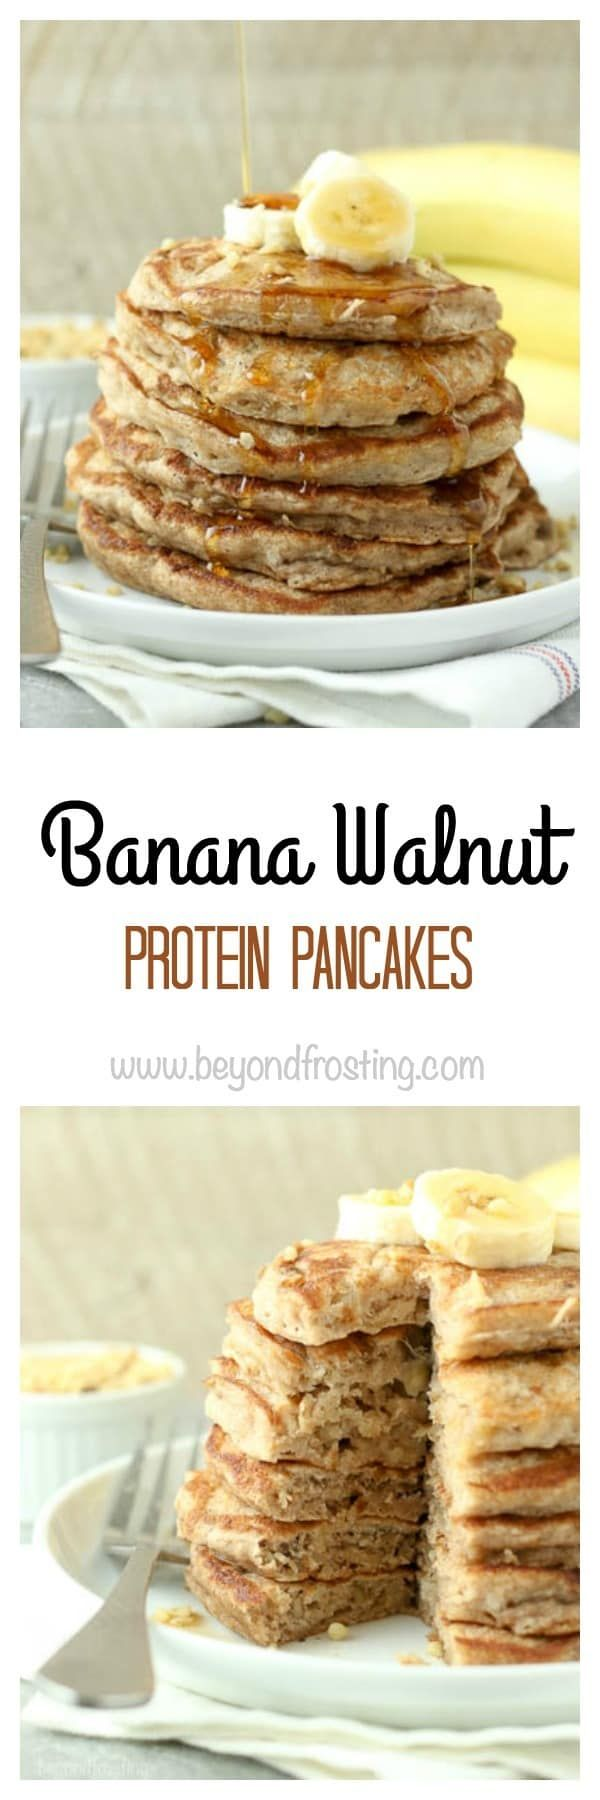 These Banana Walnut Protein Pancakes come together in a snap. With fresh bananas, Krusteaz Protein Pancake mix and a touch of cinnamon, you'll fall in love with this breakfast.